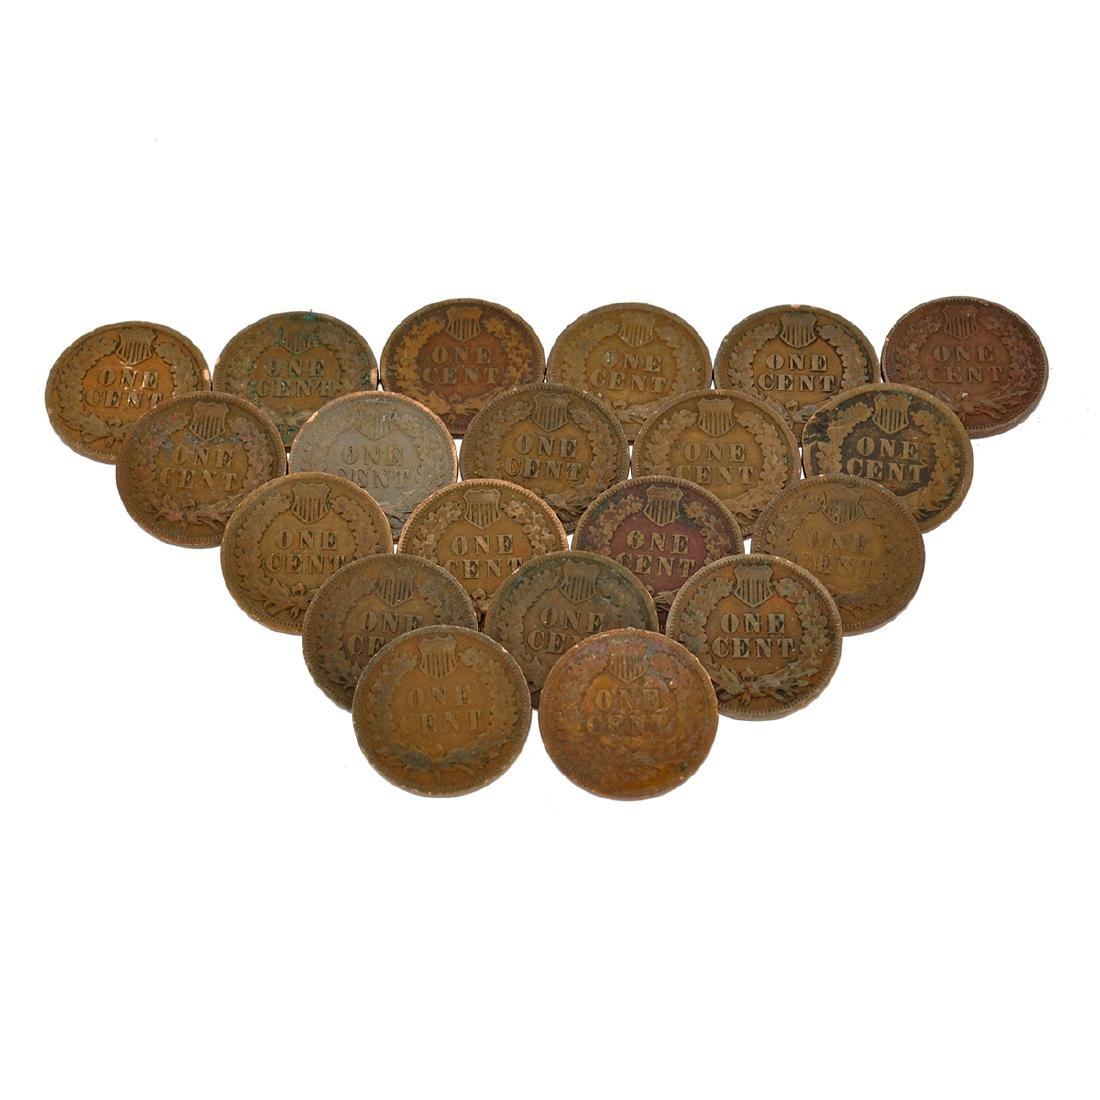 20 Indian Head One Cent Coins - 2